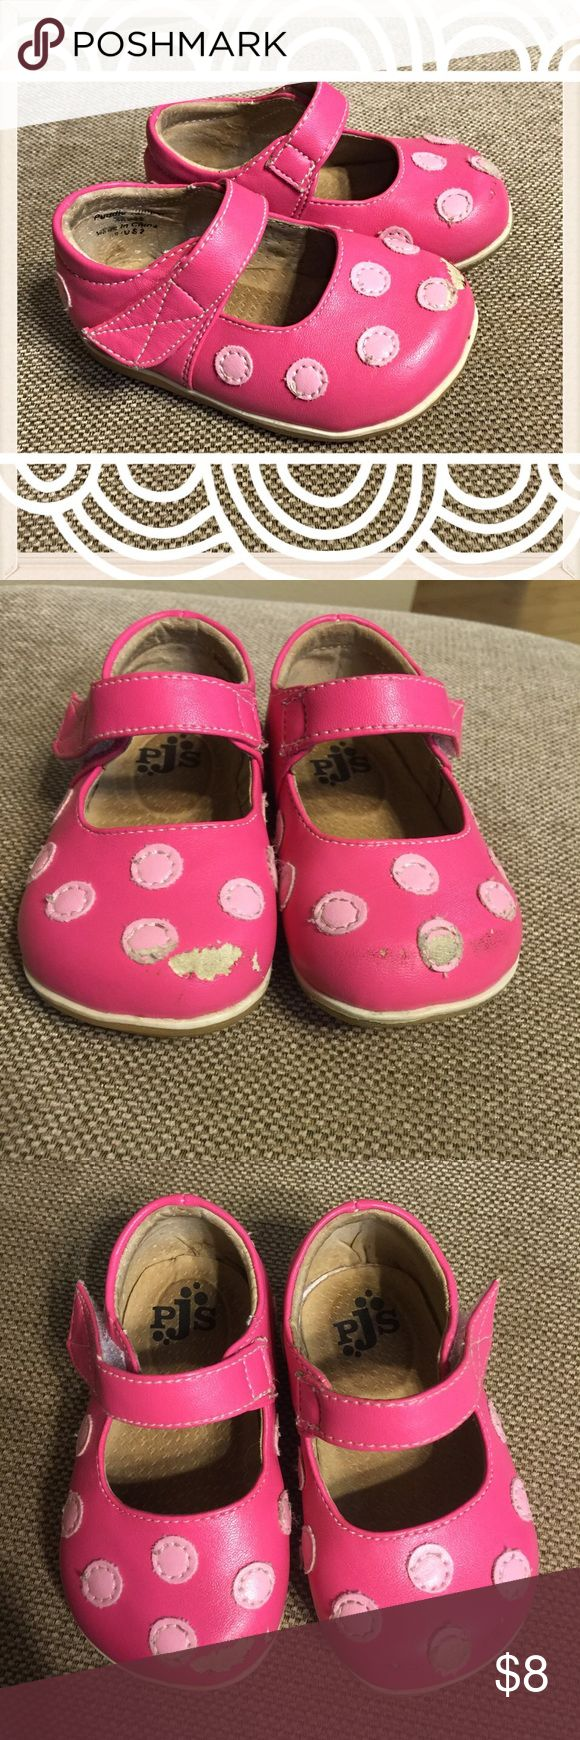 Puddle Jumper Mary Janes, Infant 2 Pink polka dot. Scuffing to toes. Cute play shoes. Puddle Jumpers Shoes